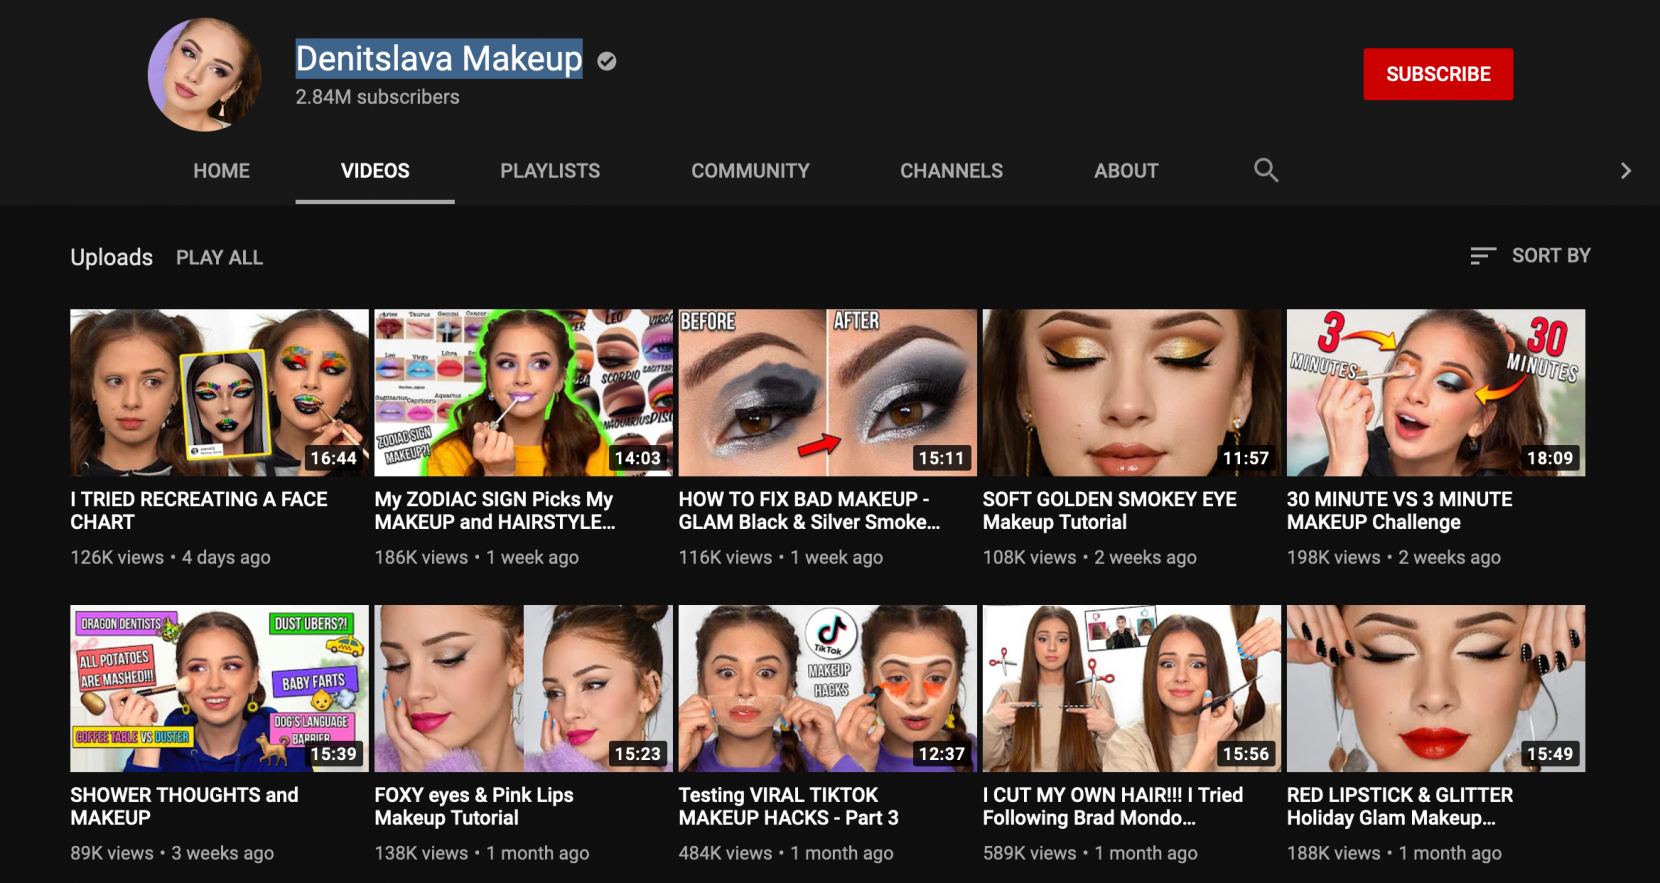 Denitslava Makeup and Beauty's Personal Branding - YouTube